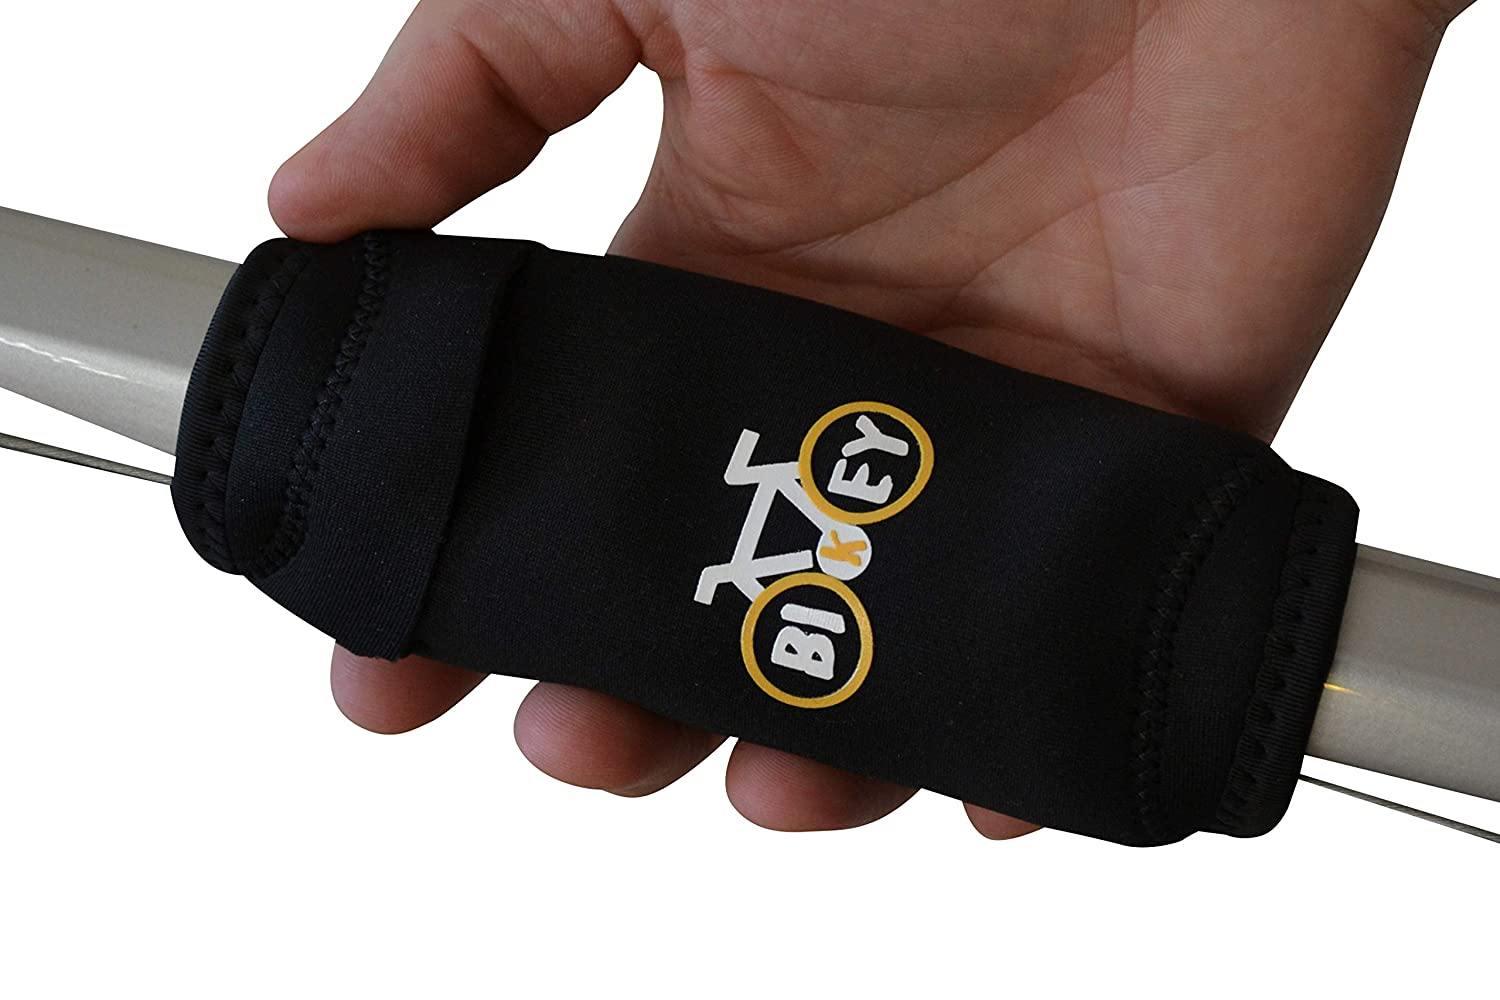 Bikey – A Flexible Pocket Bag for Bikes for Storing Your Keys or Small Items